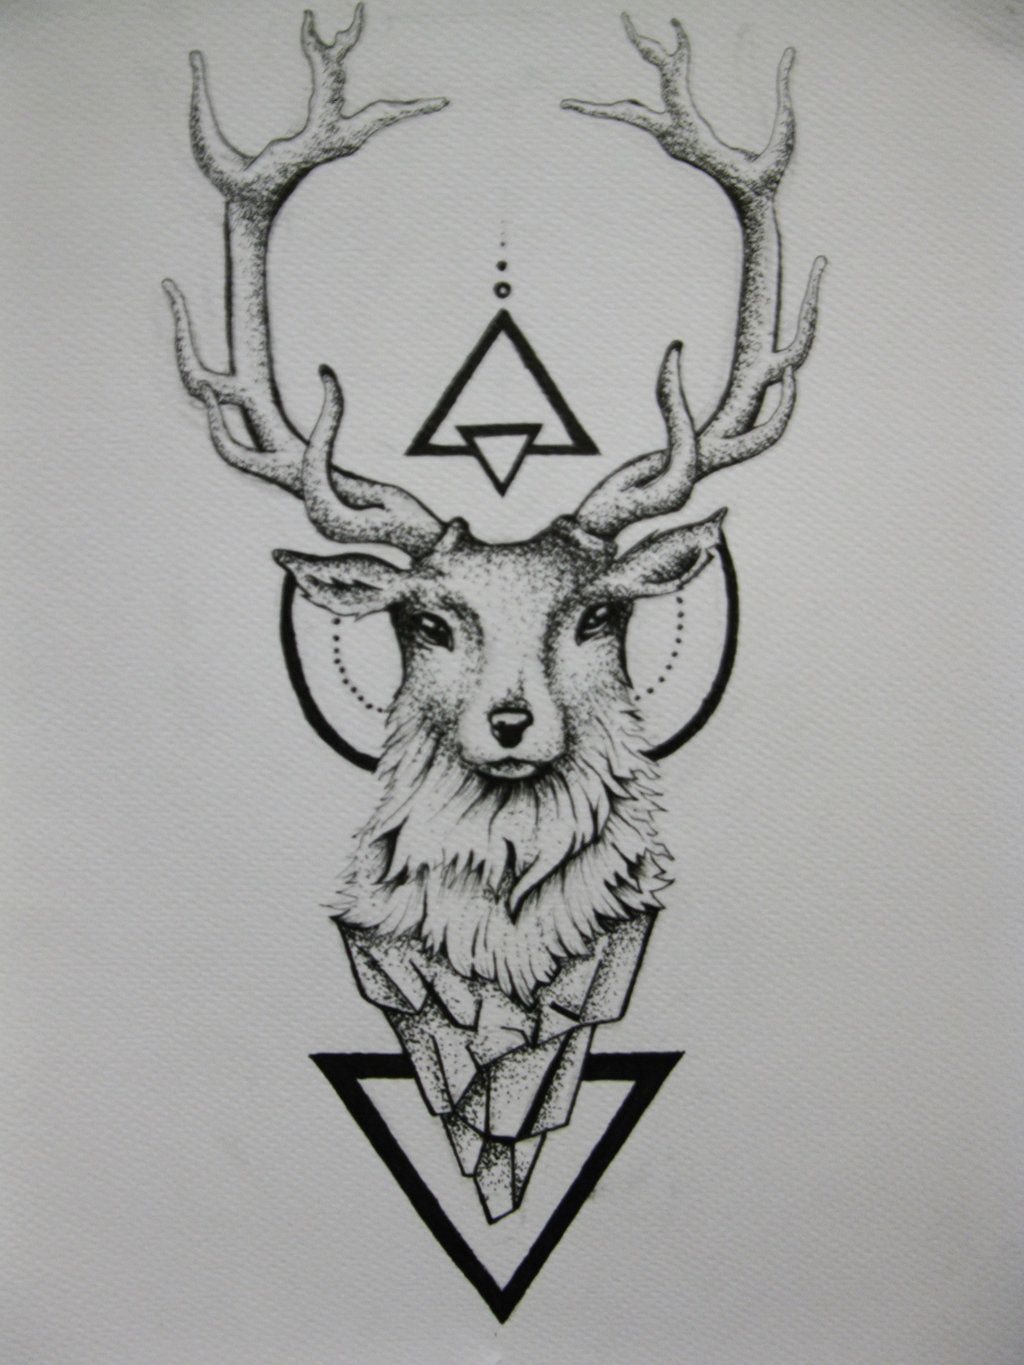 geometric triangles and deer head tattoo design rh askideas com Deer Skull Tattoos Deer Horn Tattoos